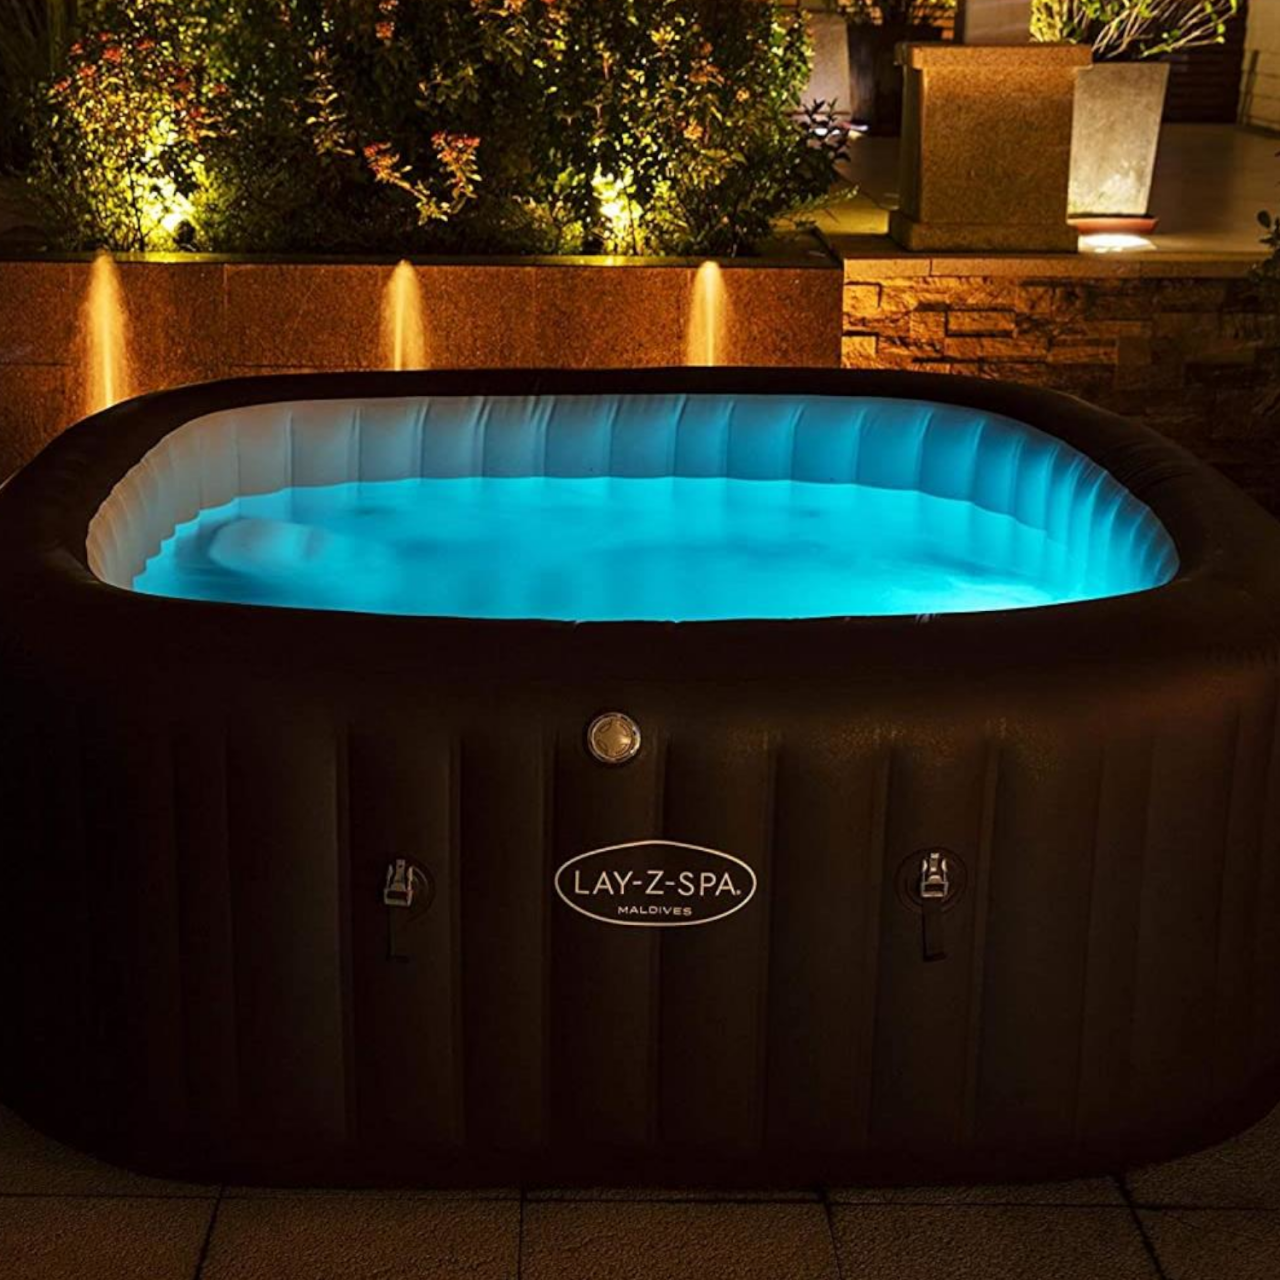 Bestway 60302 Lay-Z-Spa ColorJet LED-Licht Poolbeleuchtung 7 Farben Wasserdicht